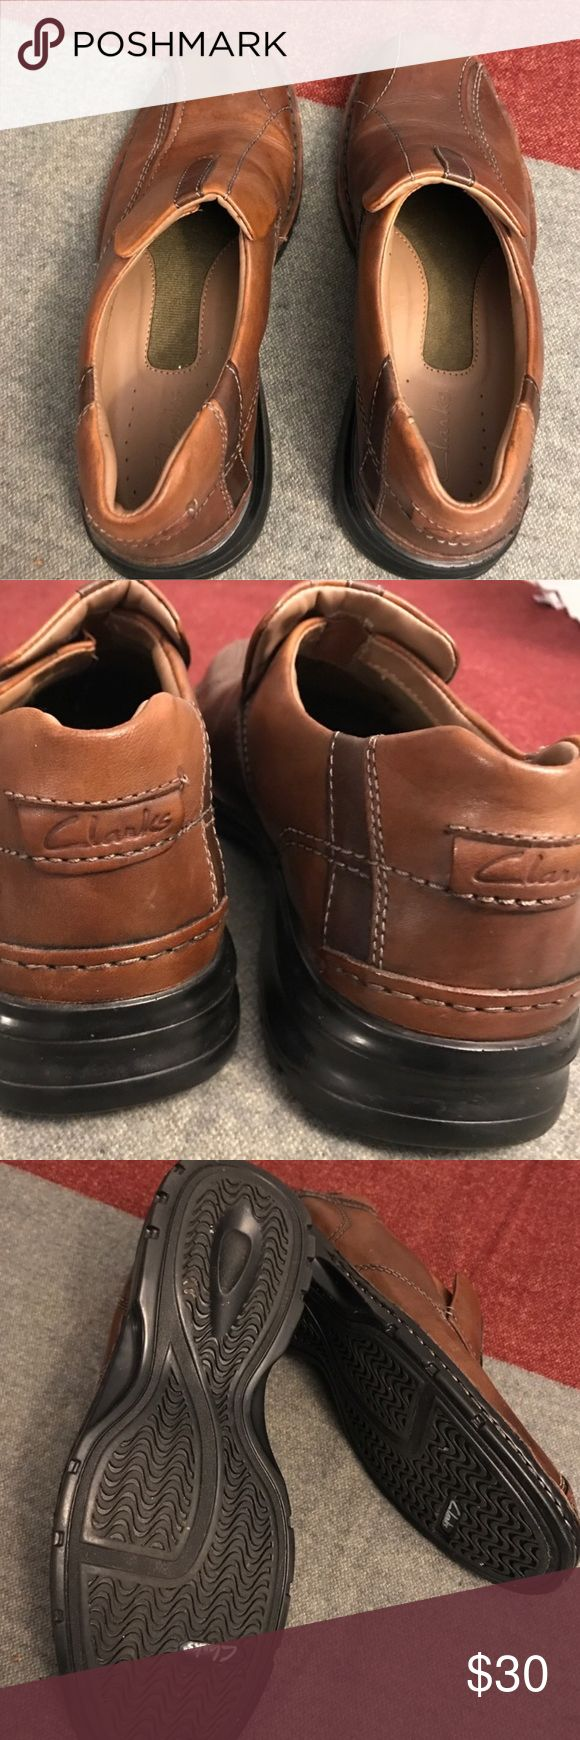 NWOT Men's Clarks Shoes In perfect condition - worn outside once Clarks Shoes Loafers & Slip-Ons